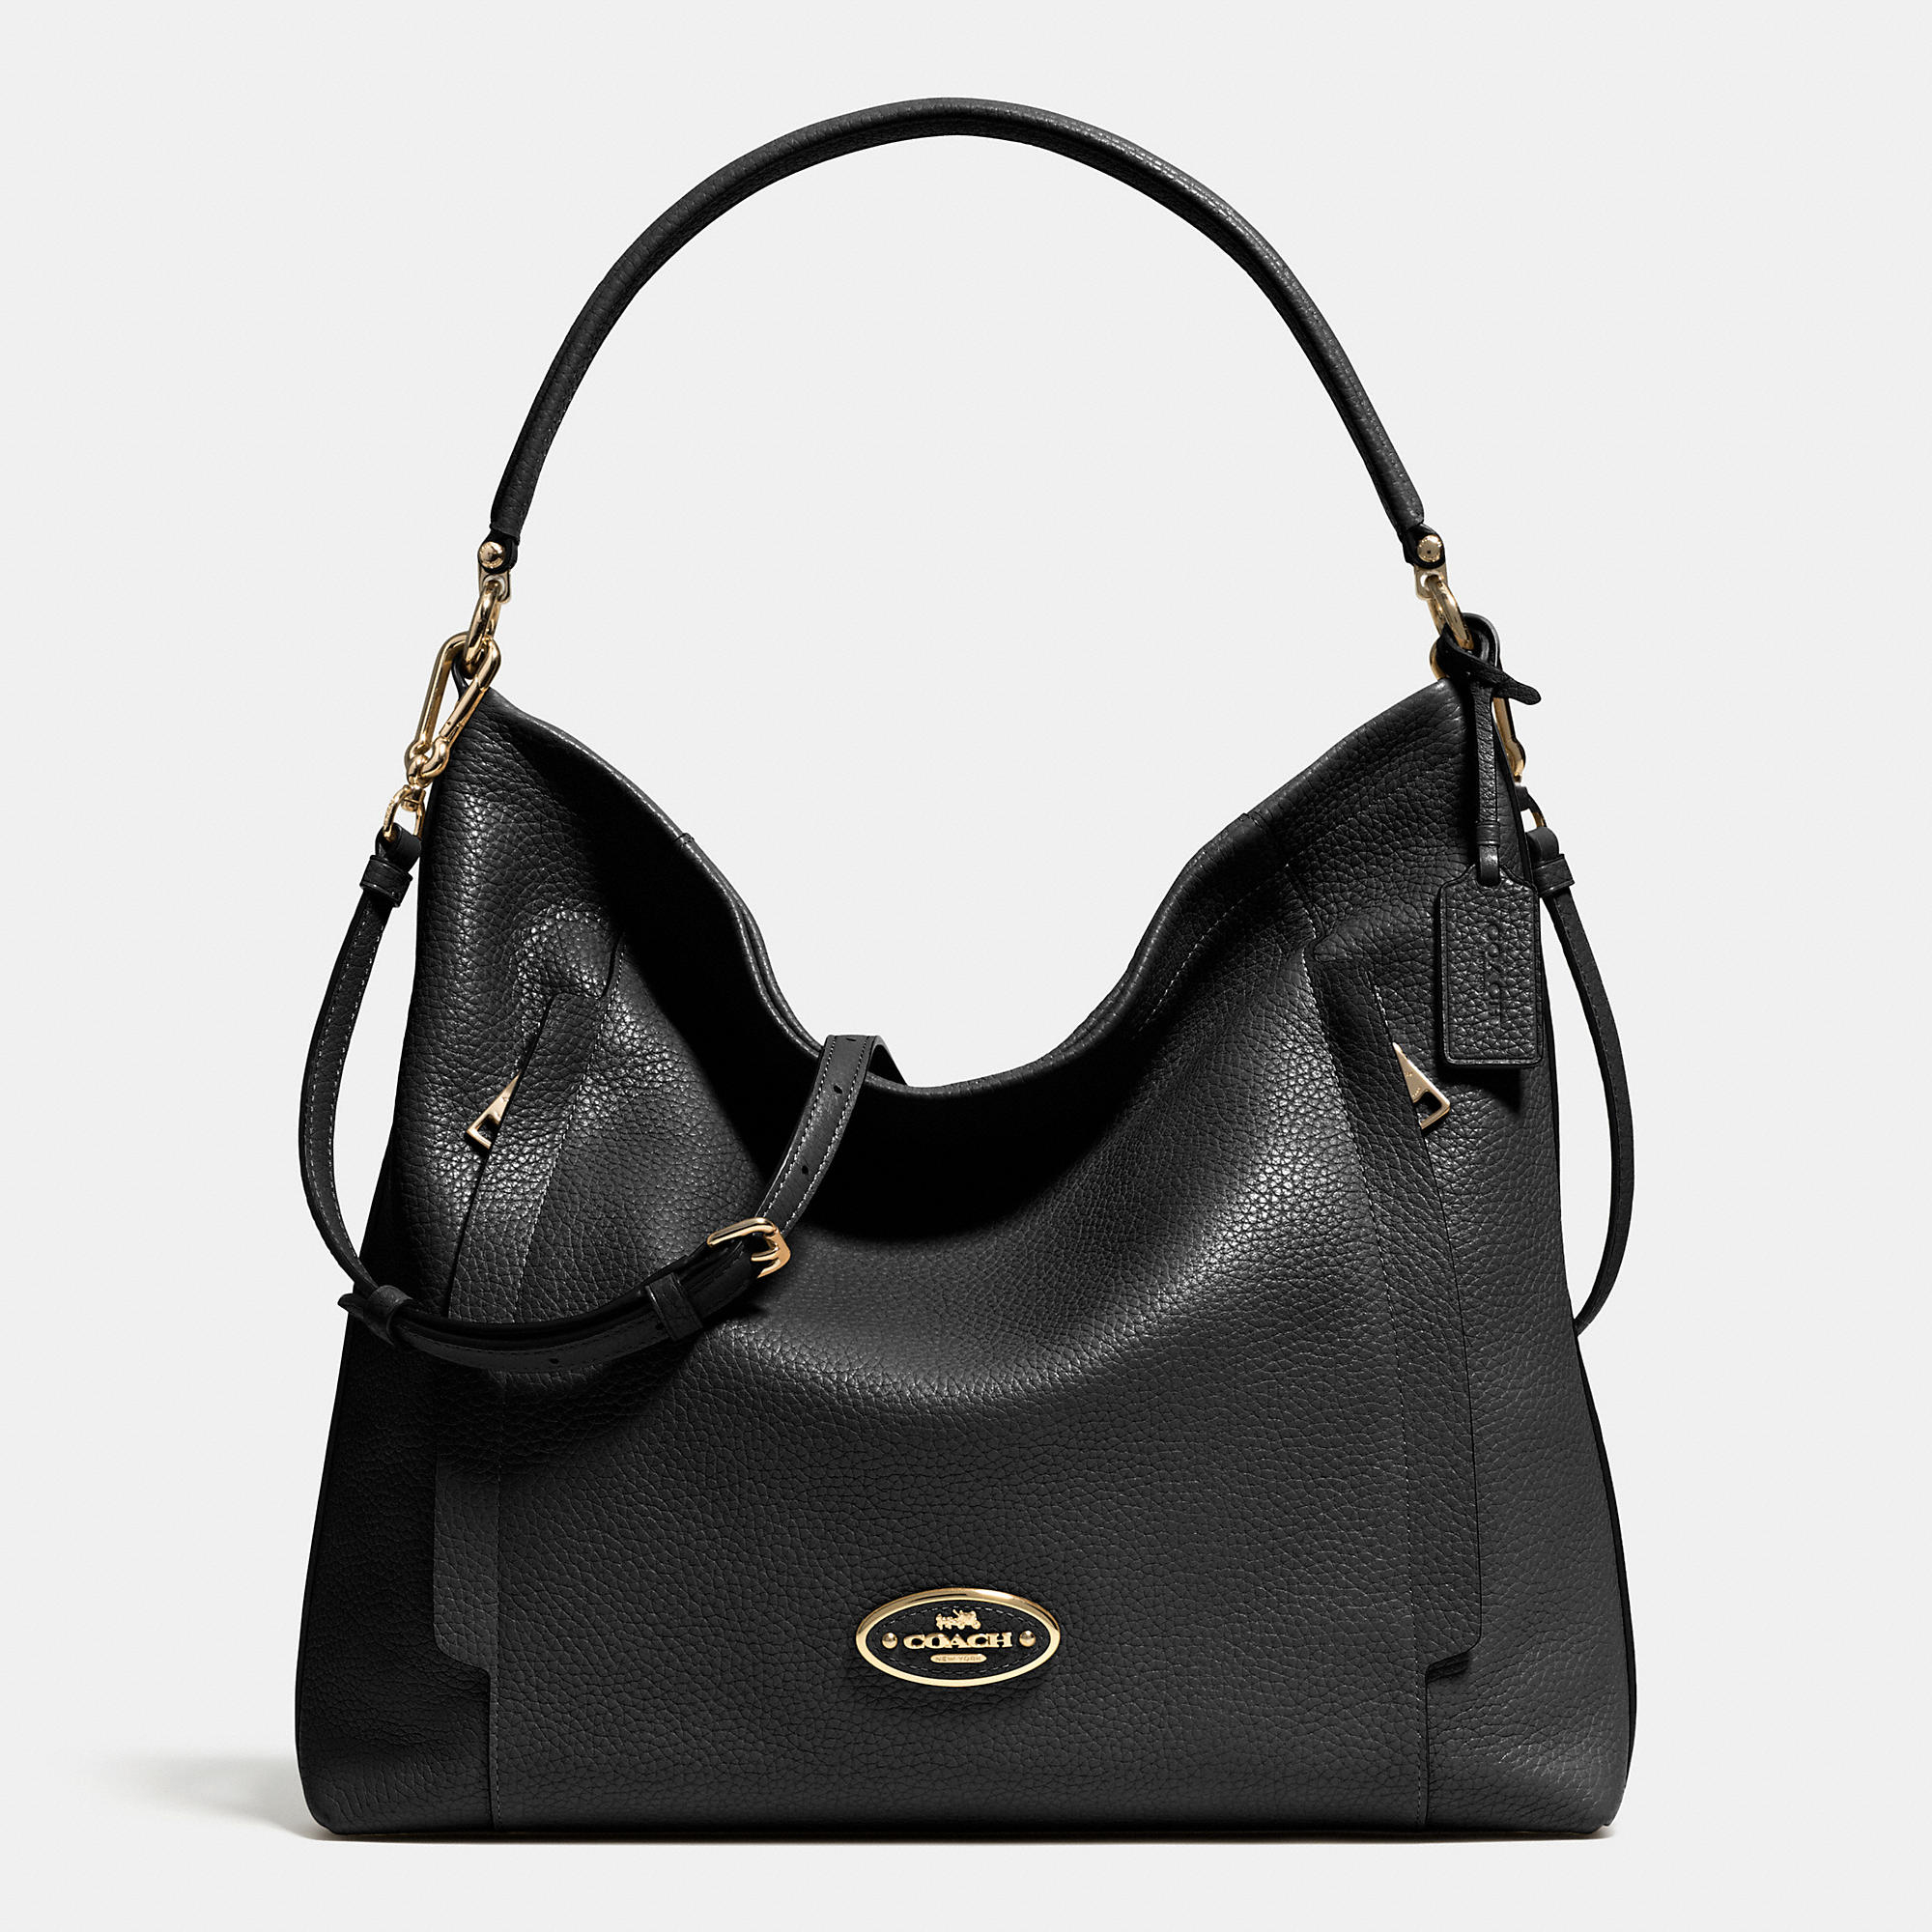 Lyst - Coach Large Scout Hobo In Pebble Leather in Metallic